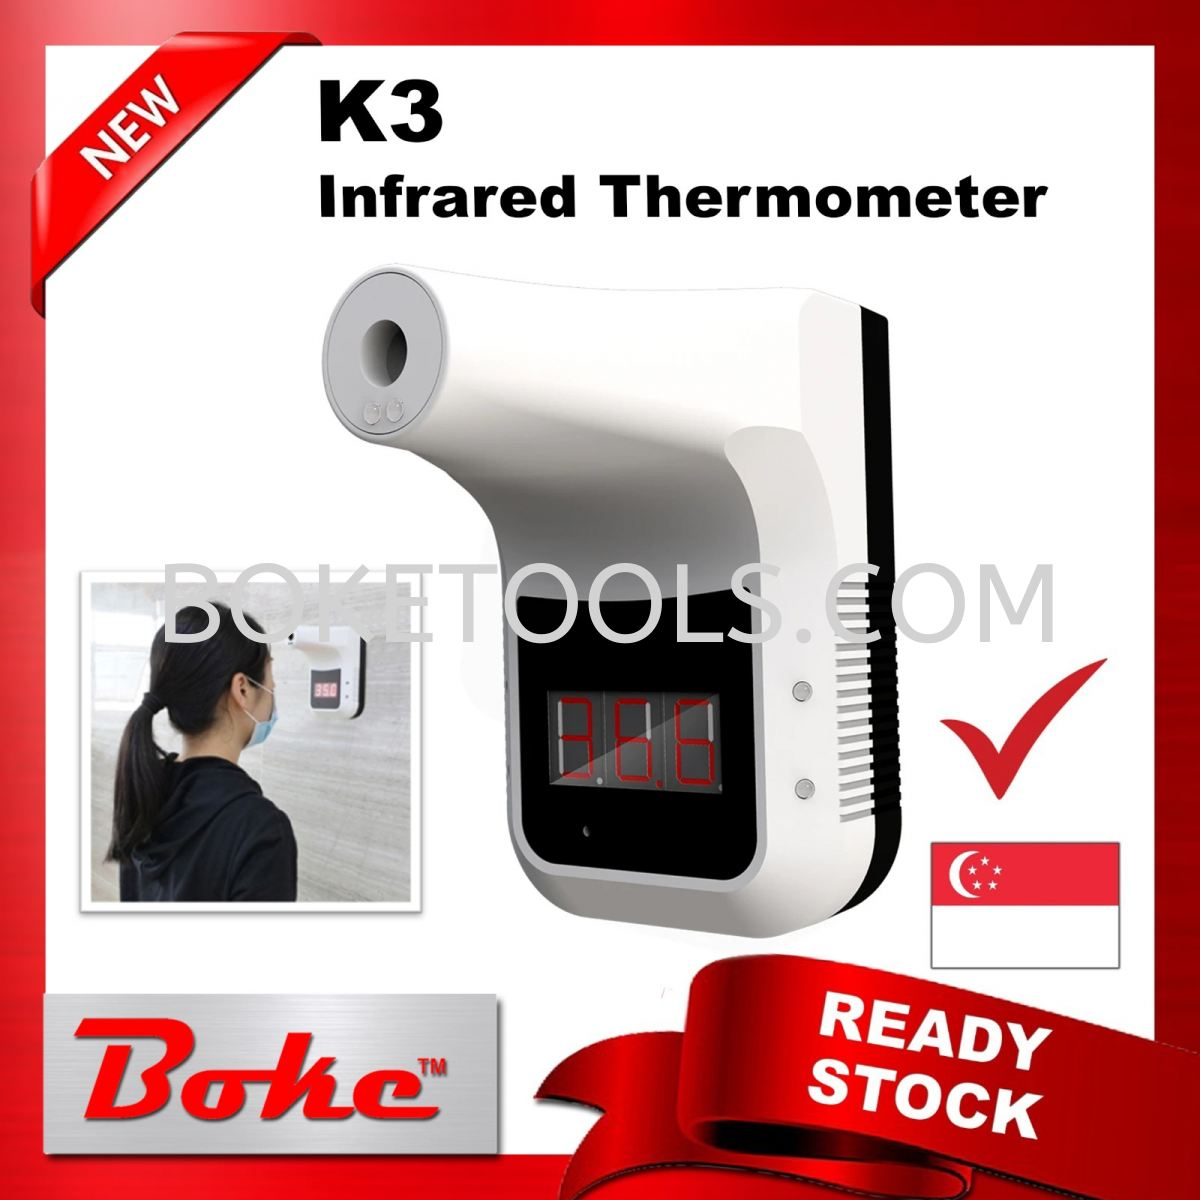 K3 Infrared Thermometer COVID-19 Product Singapore, Ang Mo Kio. Supplier, Supply, Manufacturer, Wholesaler, Rental | Boke Tools Machinery Pte Ltd